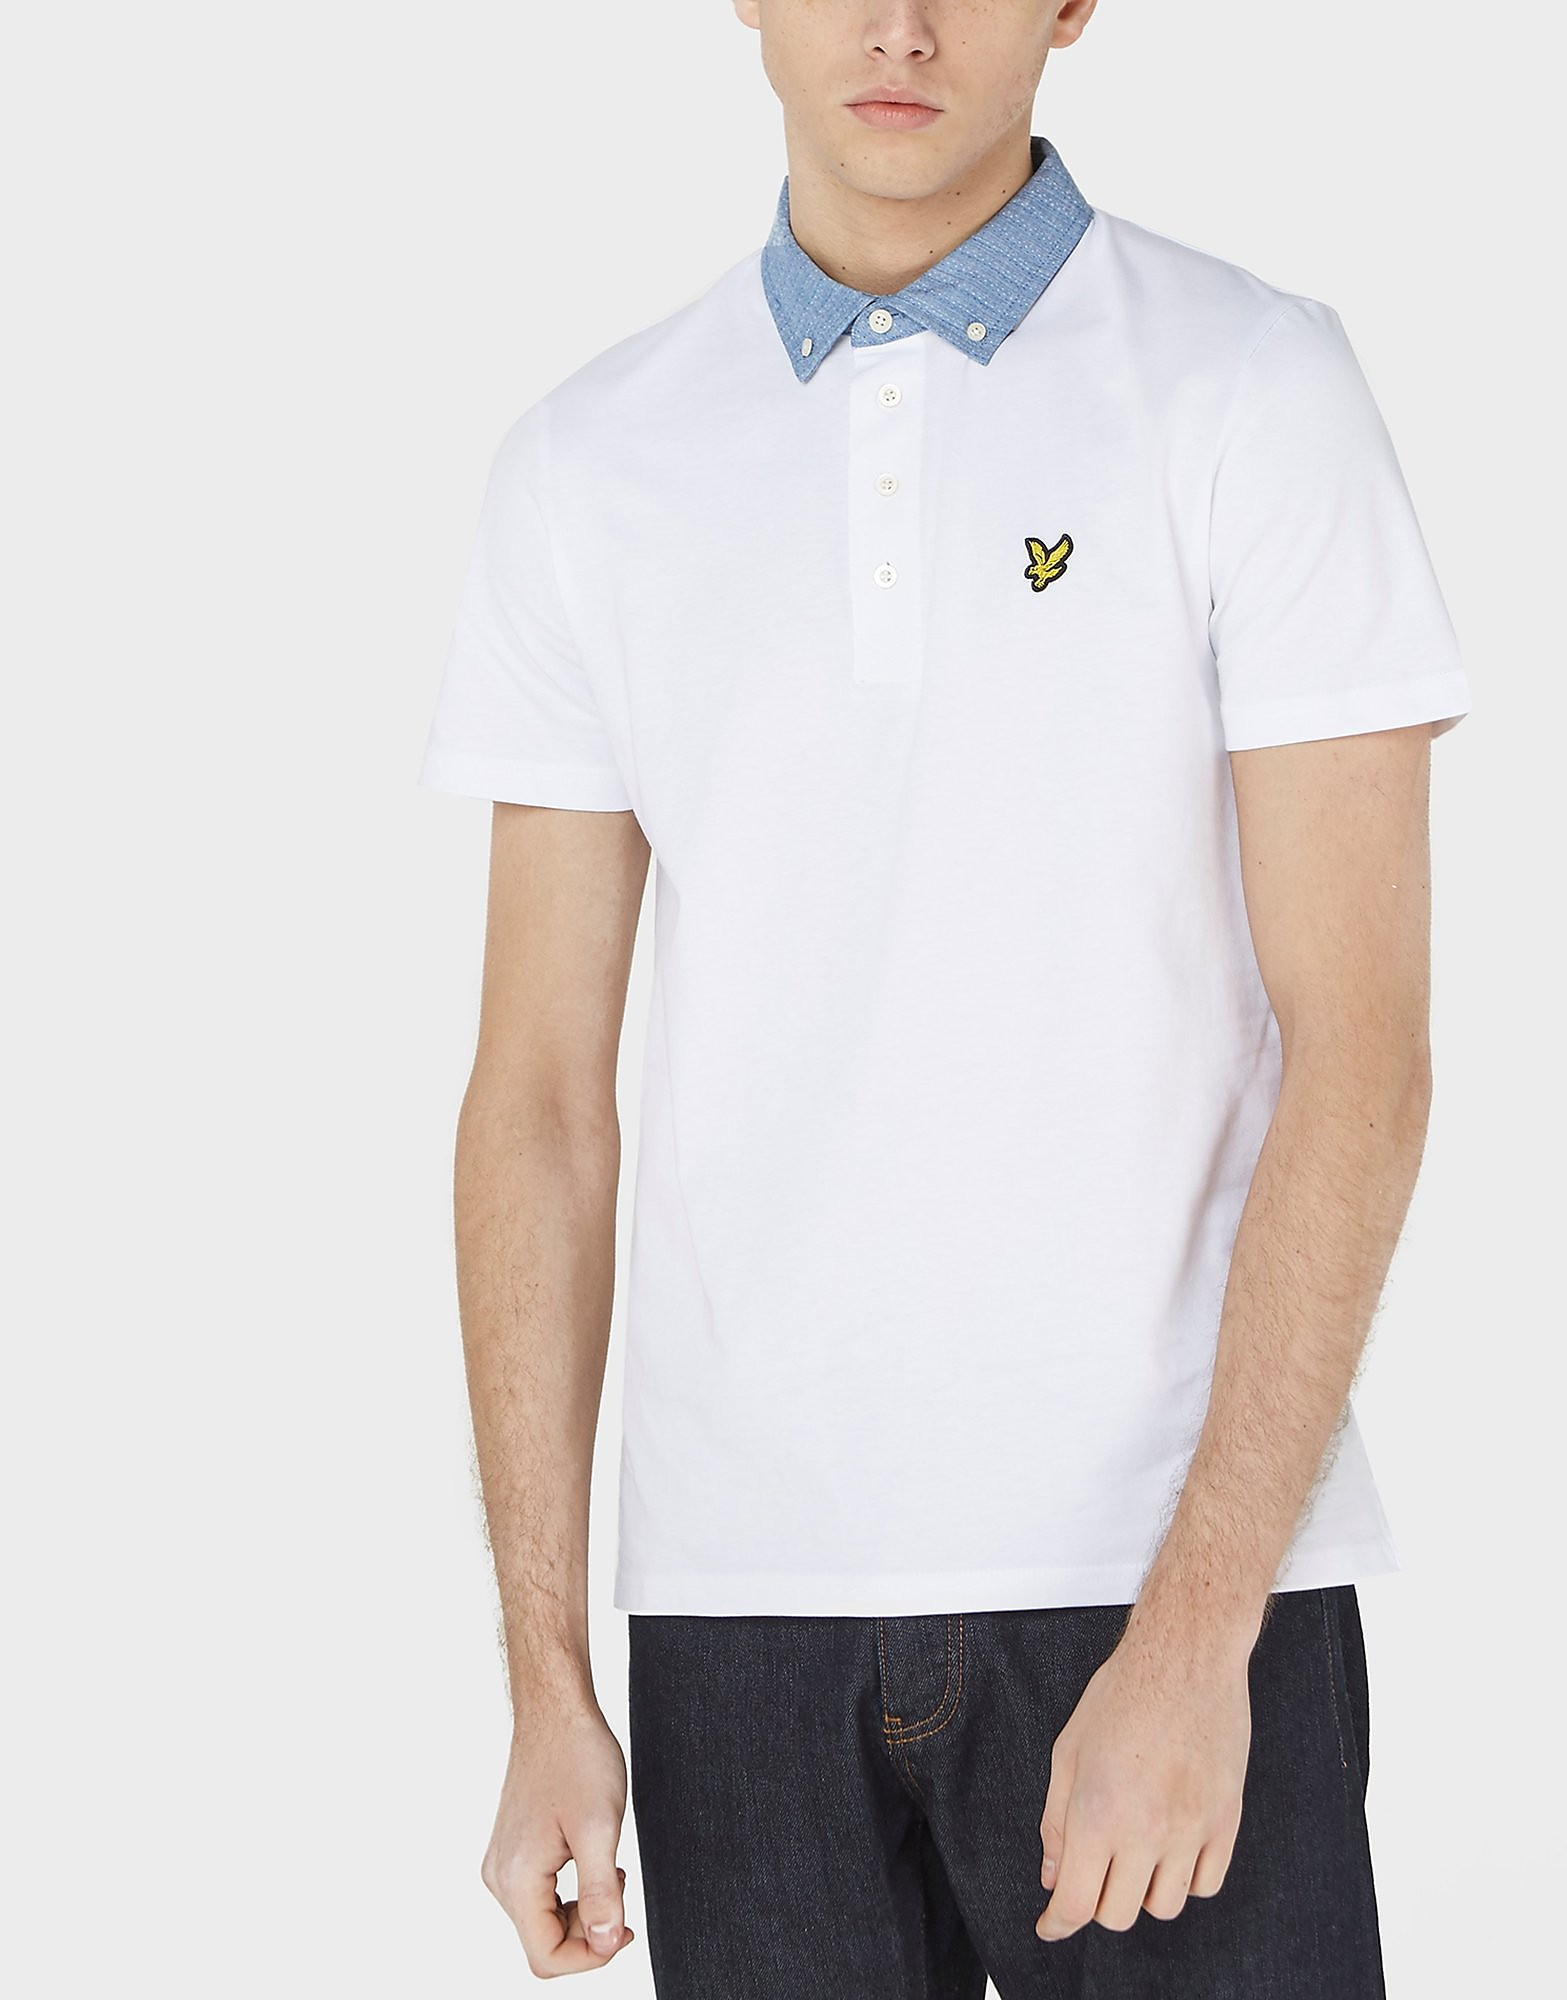 Lyle & Scott Run Stitch Short Sleeve Polo Shirt